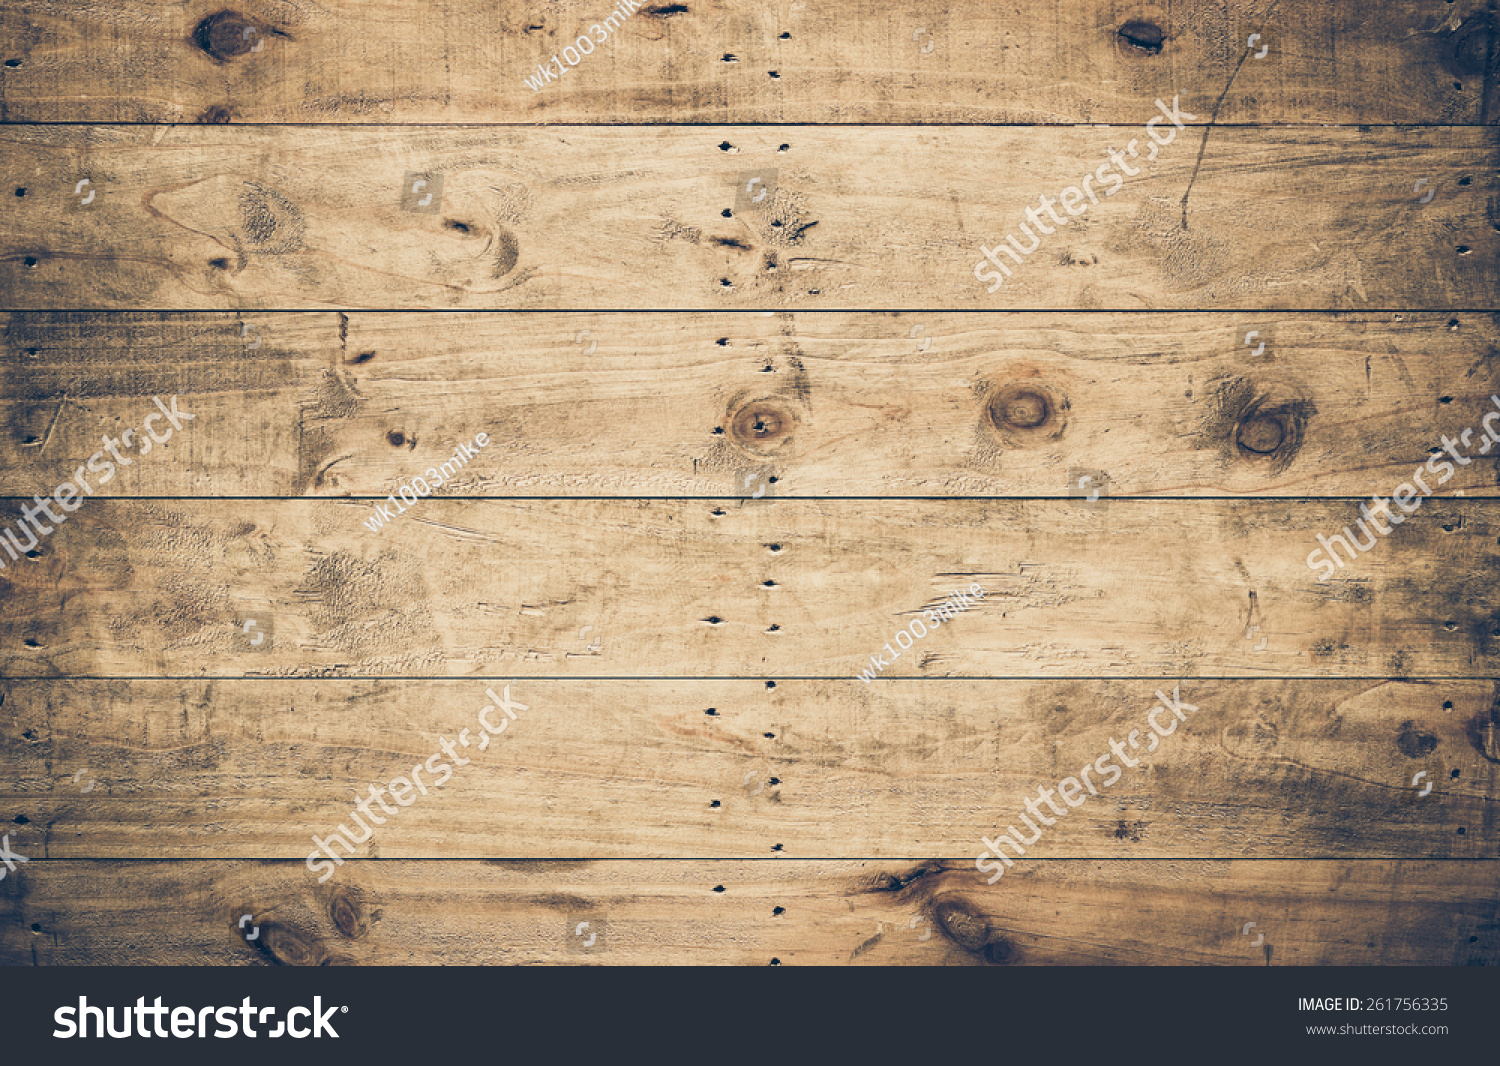 Old Ans Dirty Wood Plank Wall Stock Photo (Royalty Free) 261756335 ...